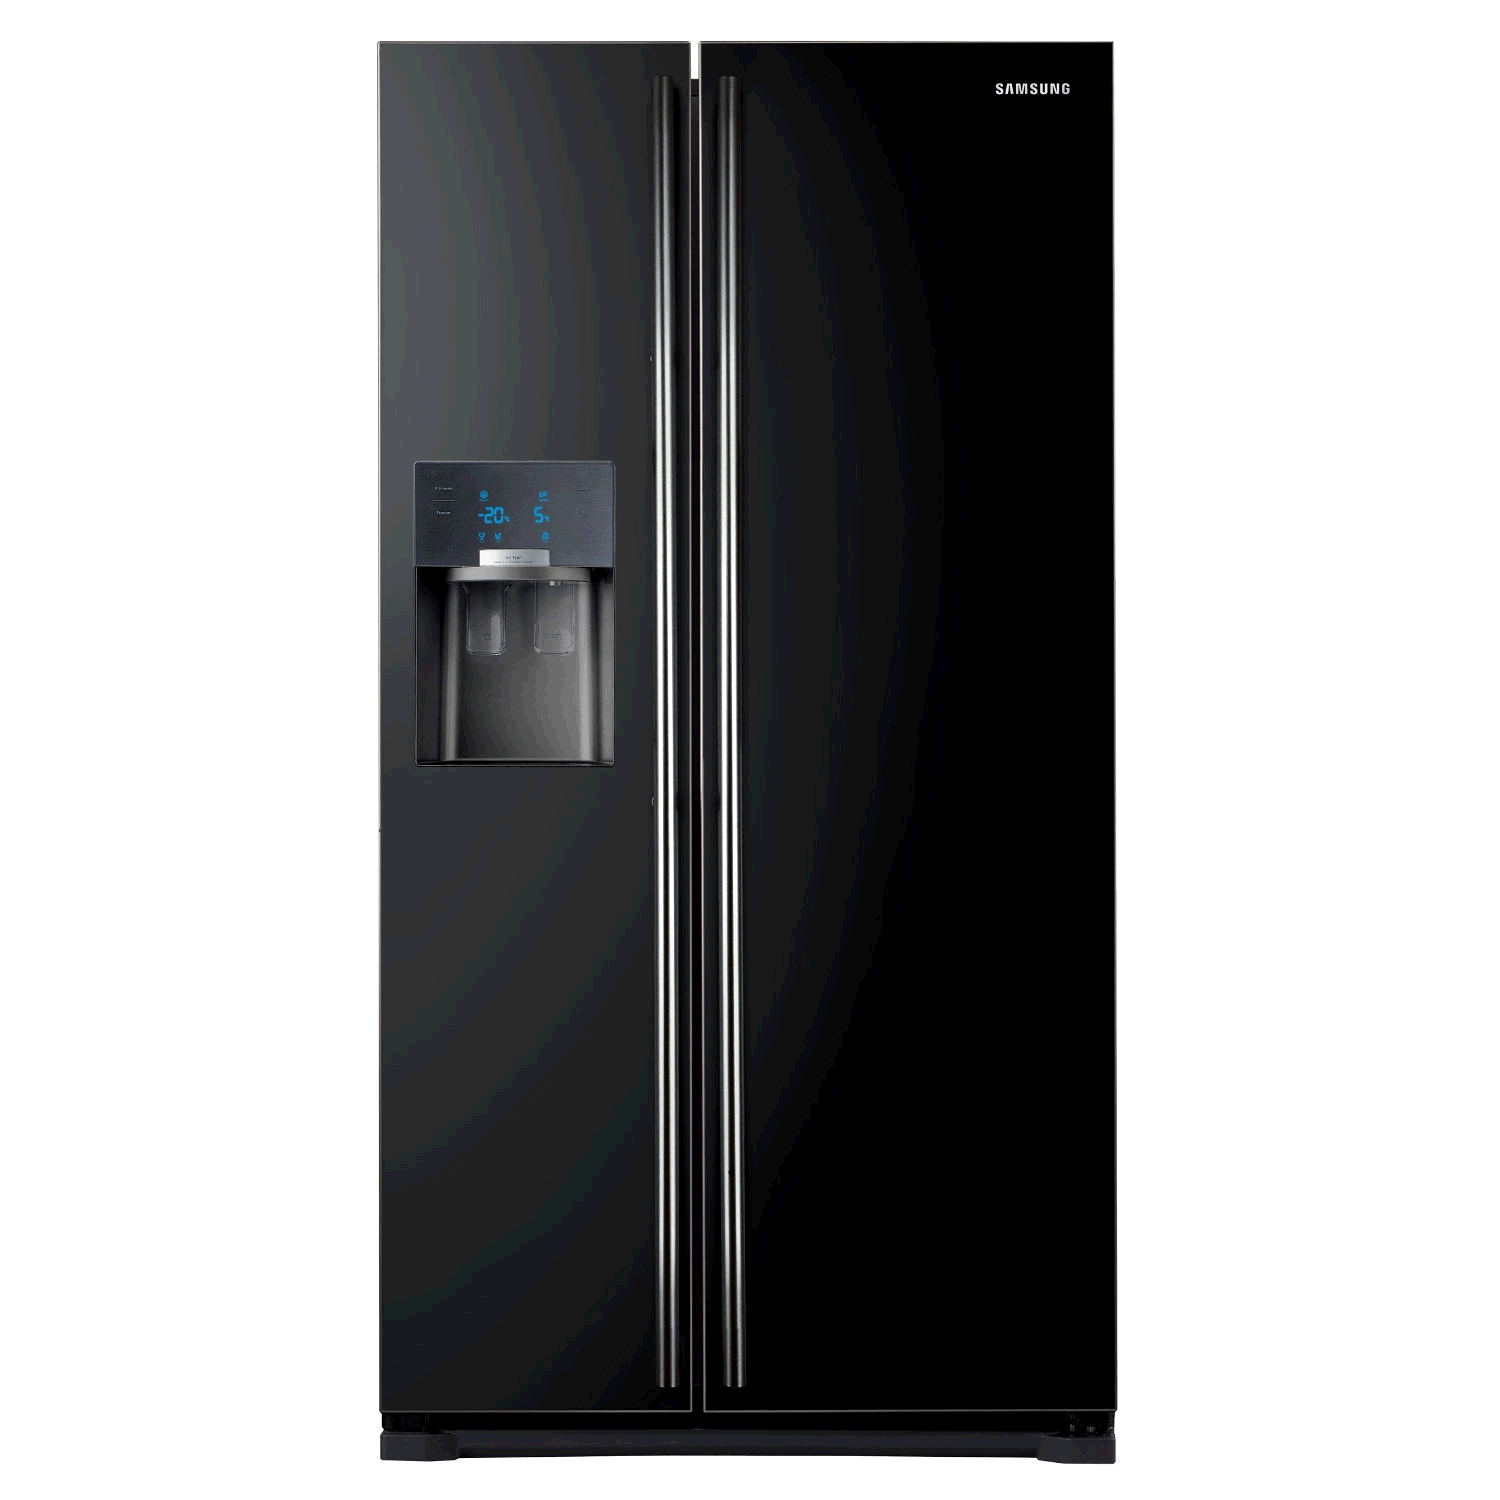 Samsung RS7567THBC American Style Frost Free  Fridge Freezer Gloss Black 5 Year Promotional Warranty